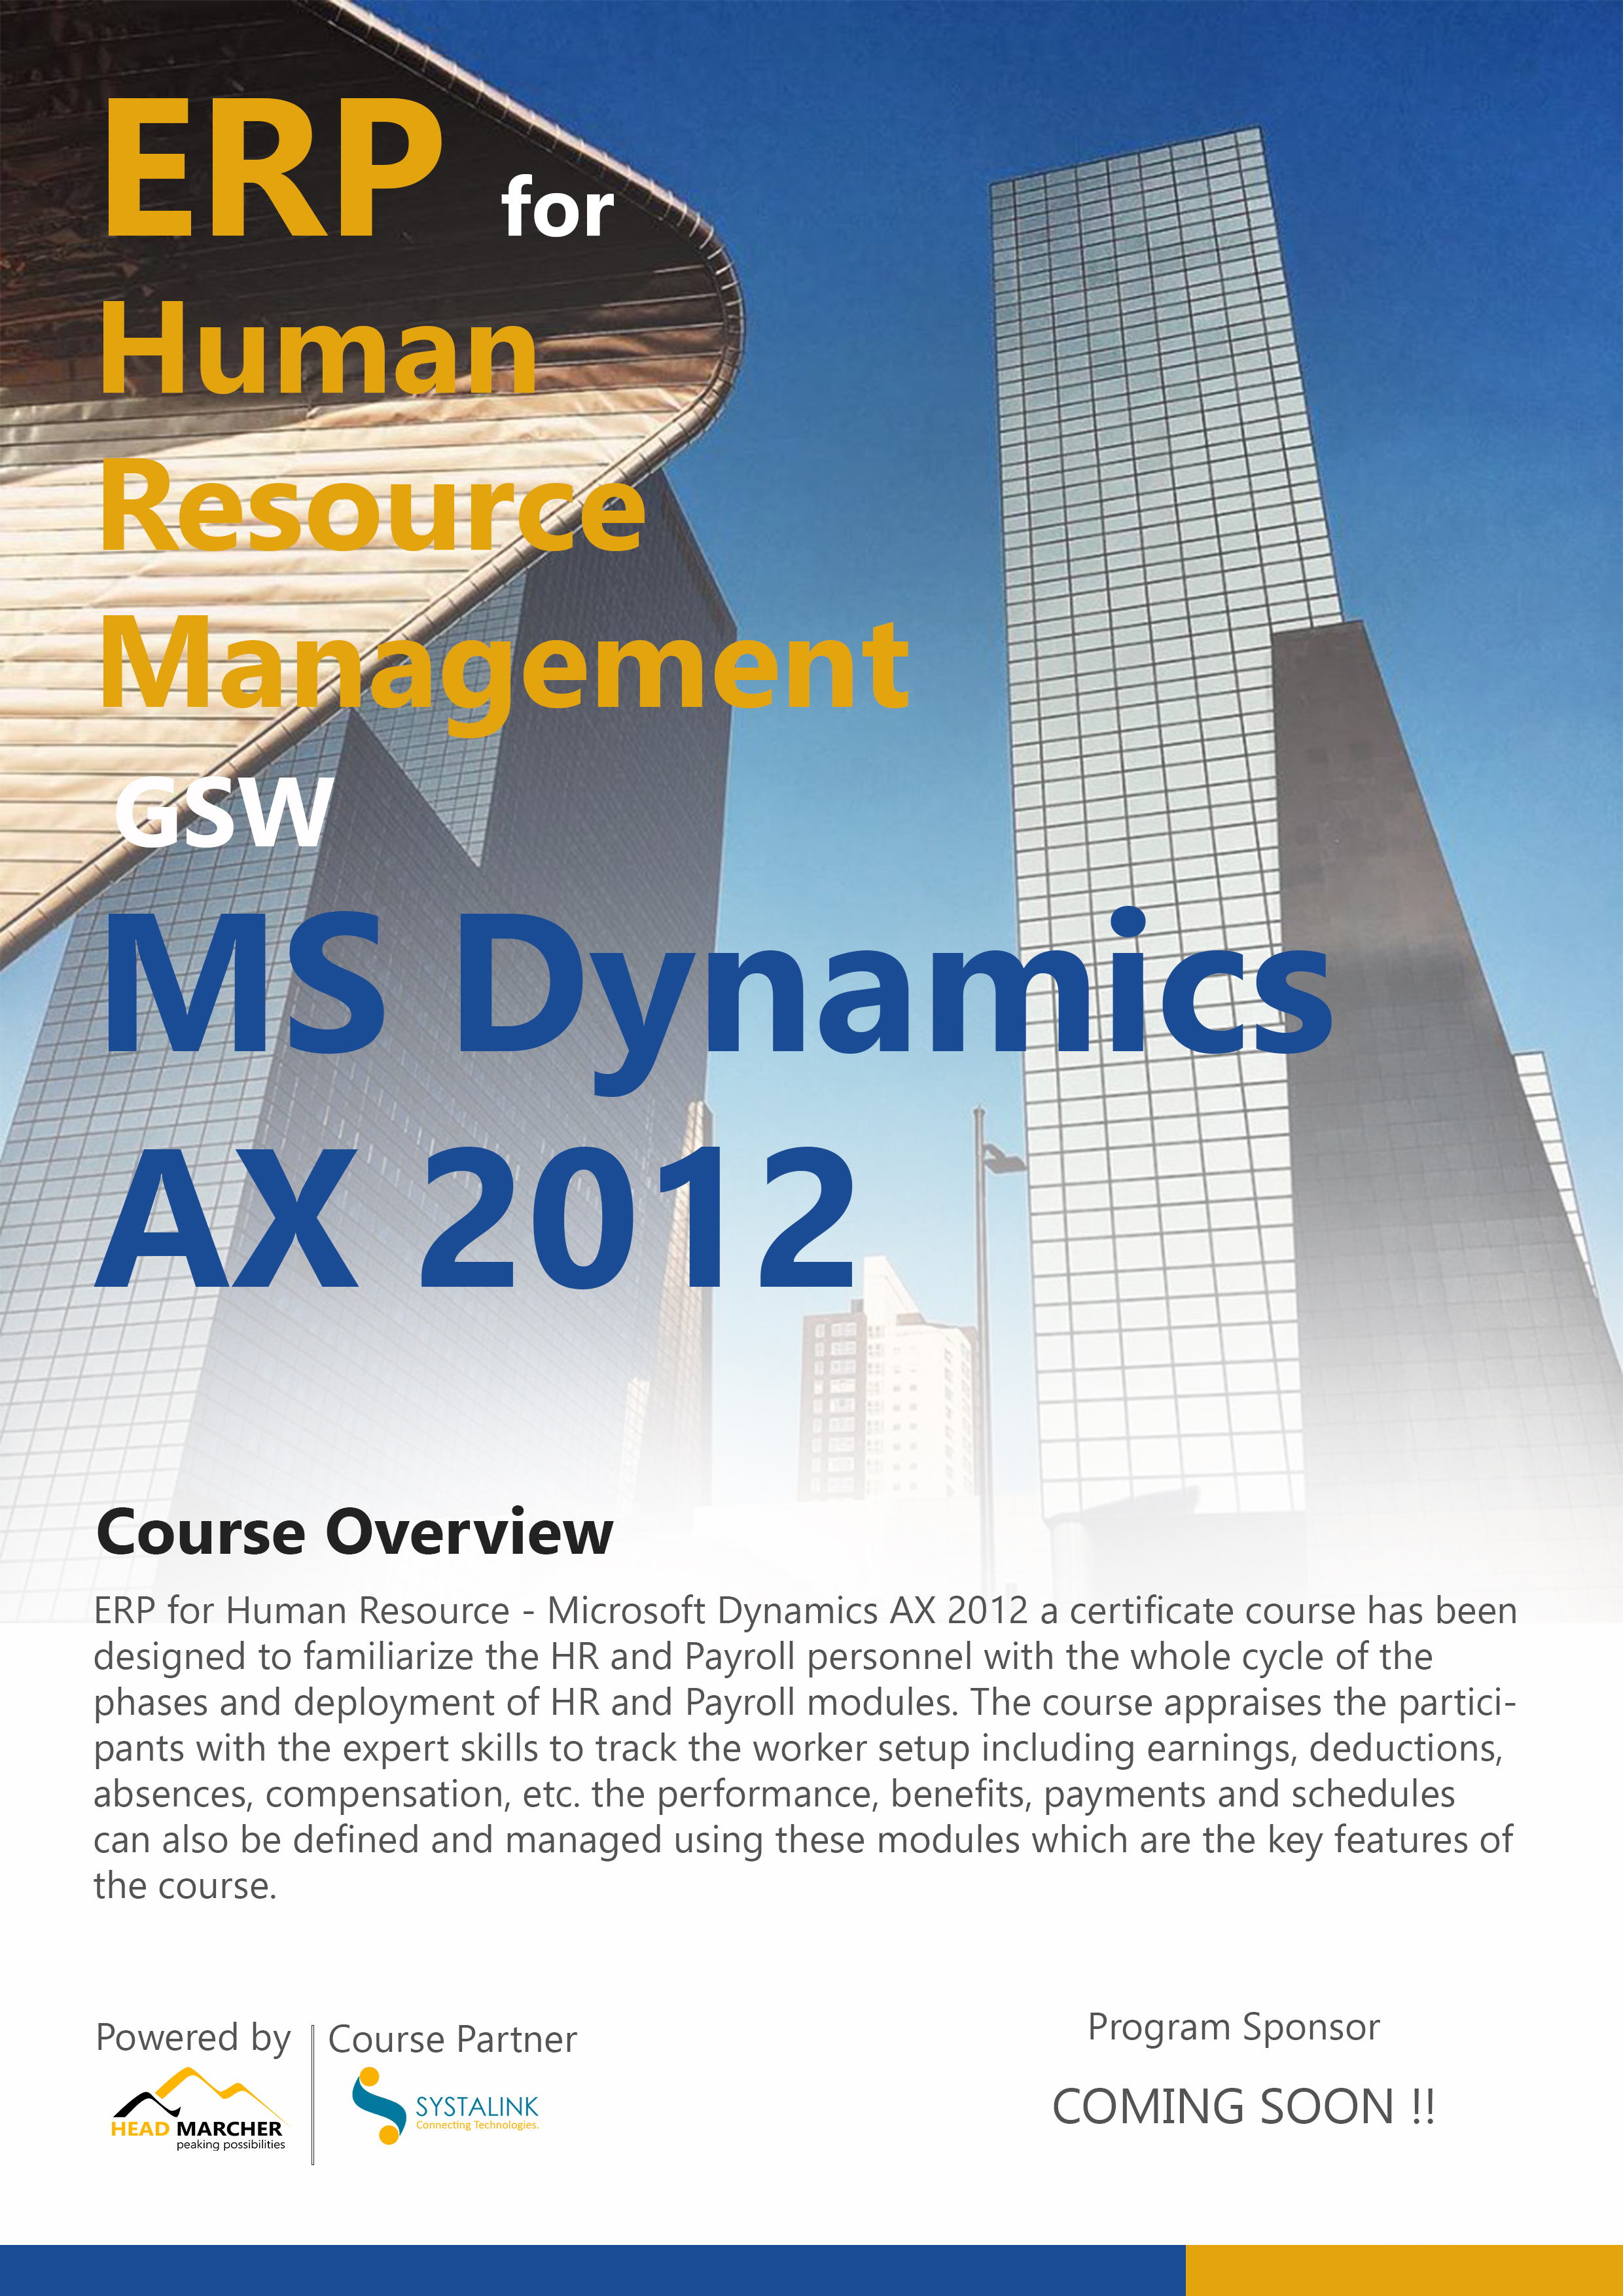 Erp for hrm getting started with ms dynamics ax 2012 event details 1betcityfo Gallery